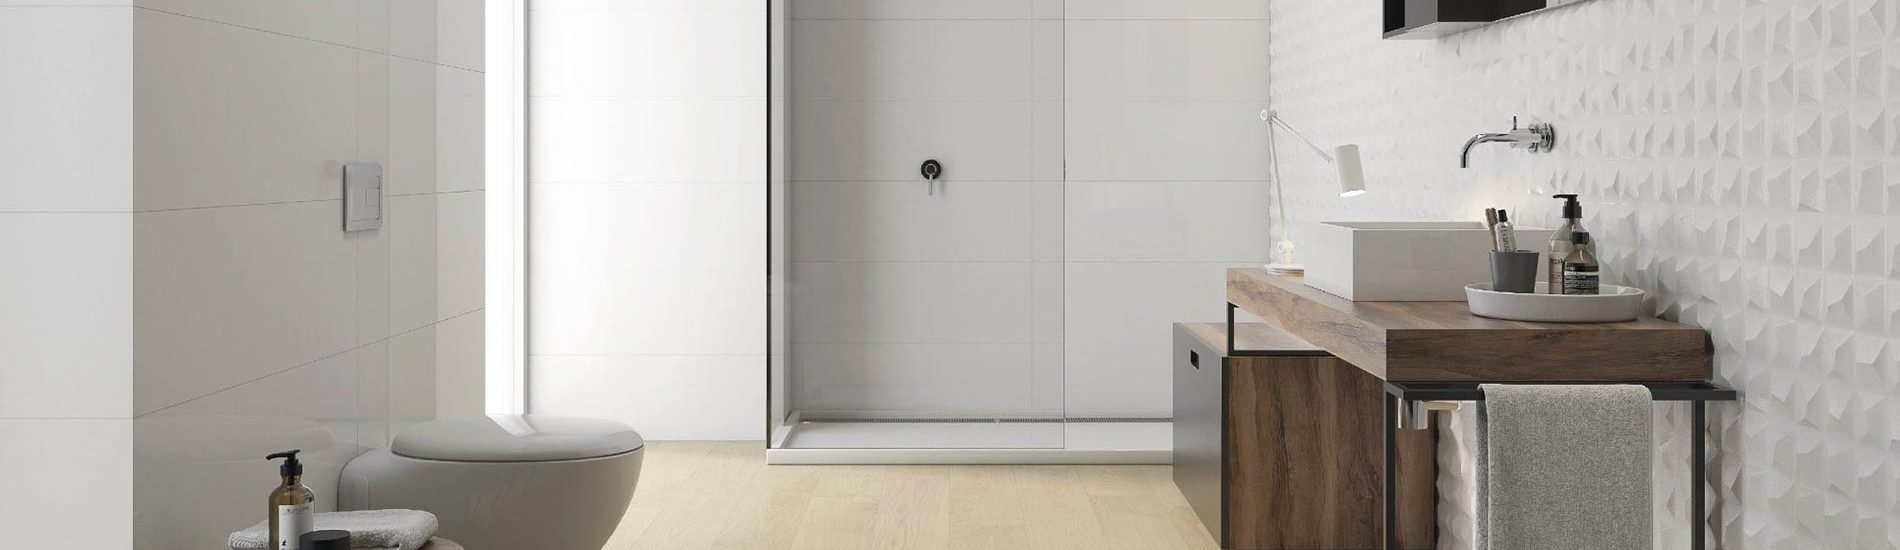 banner-candor-spanish-rectified-white-body-deco-floor-wall-tile-newker-anaheim